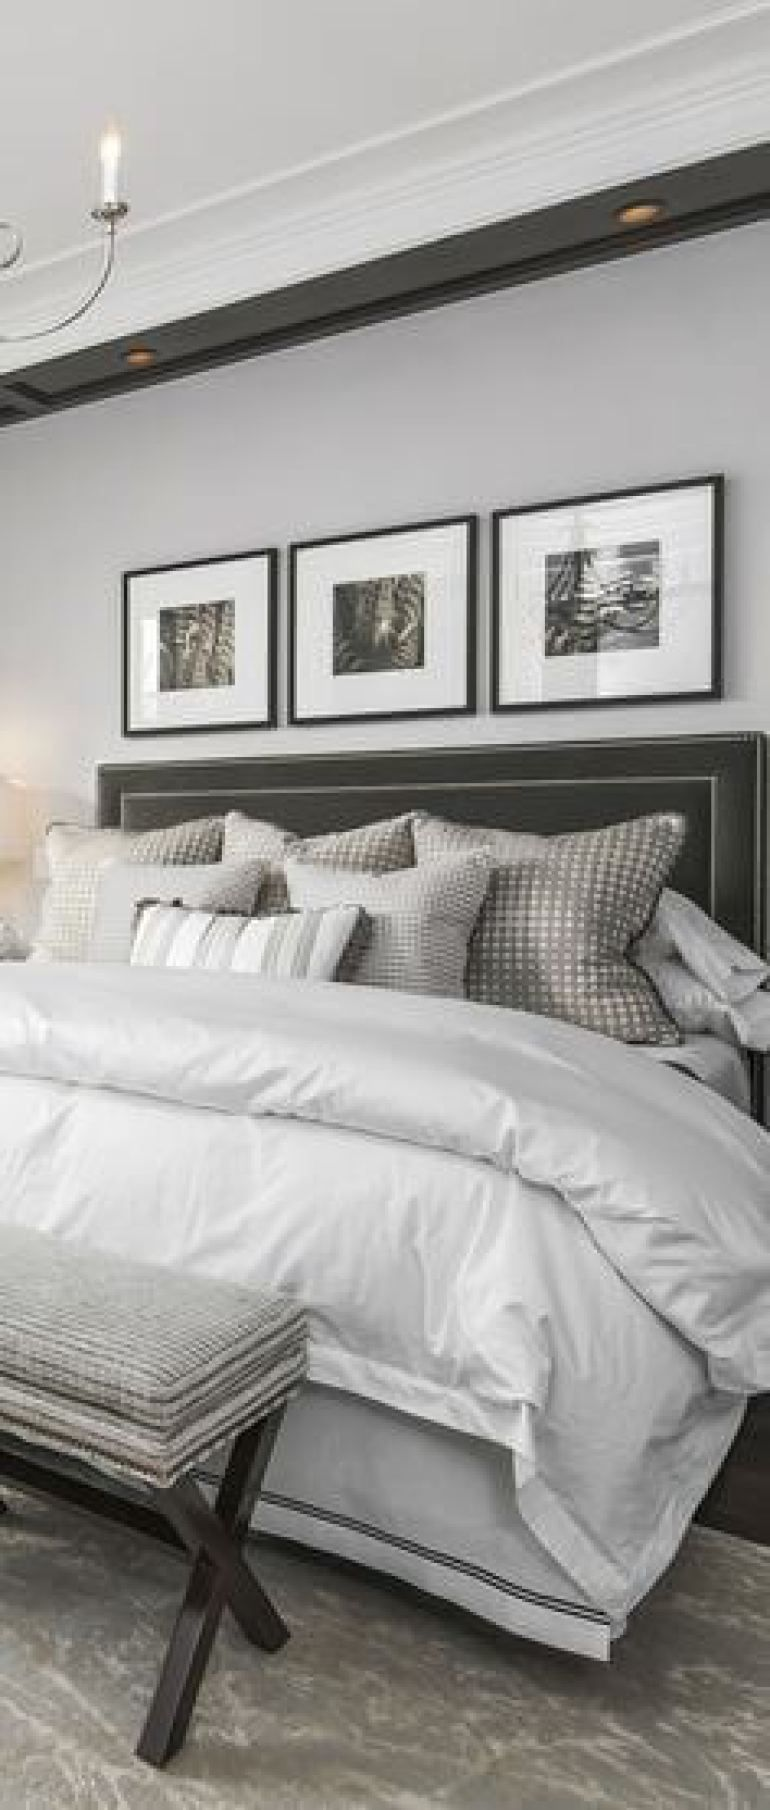 Small Master Bedroom Ideas With King Size Bed 19 Classic Master Bedroom Minimal Decor Harptimes Luxurious Bedrooms Small Master Bedroom Gorgeous Bedrooms